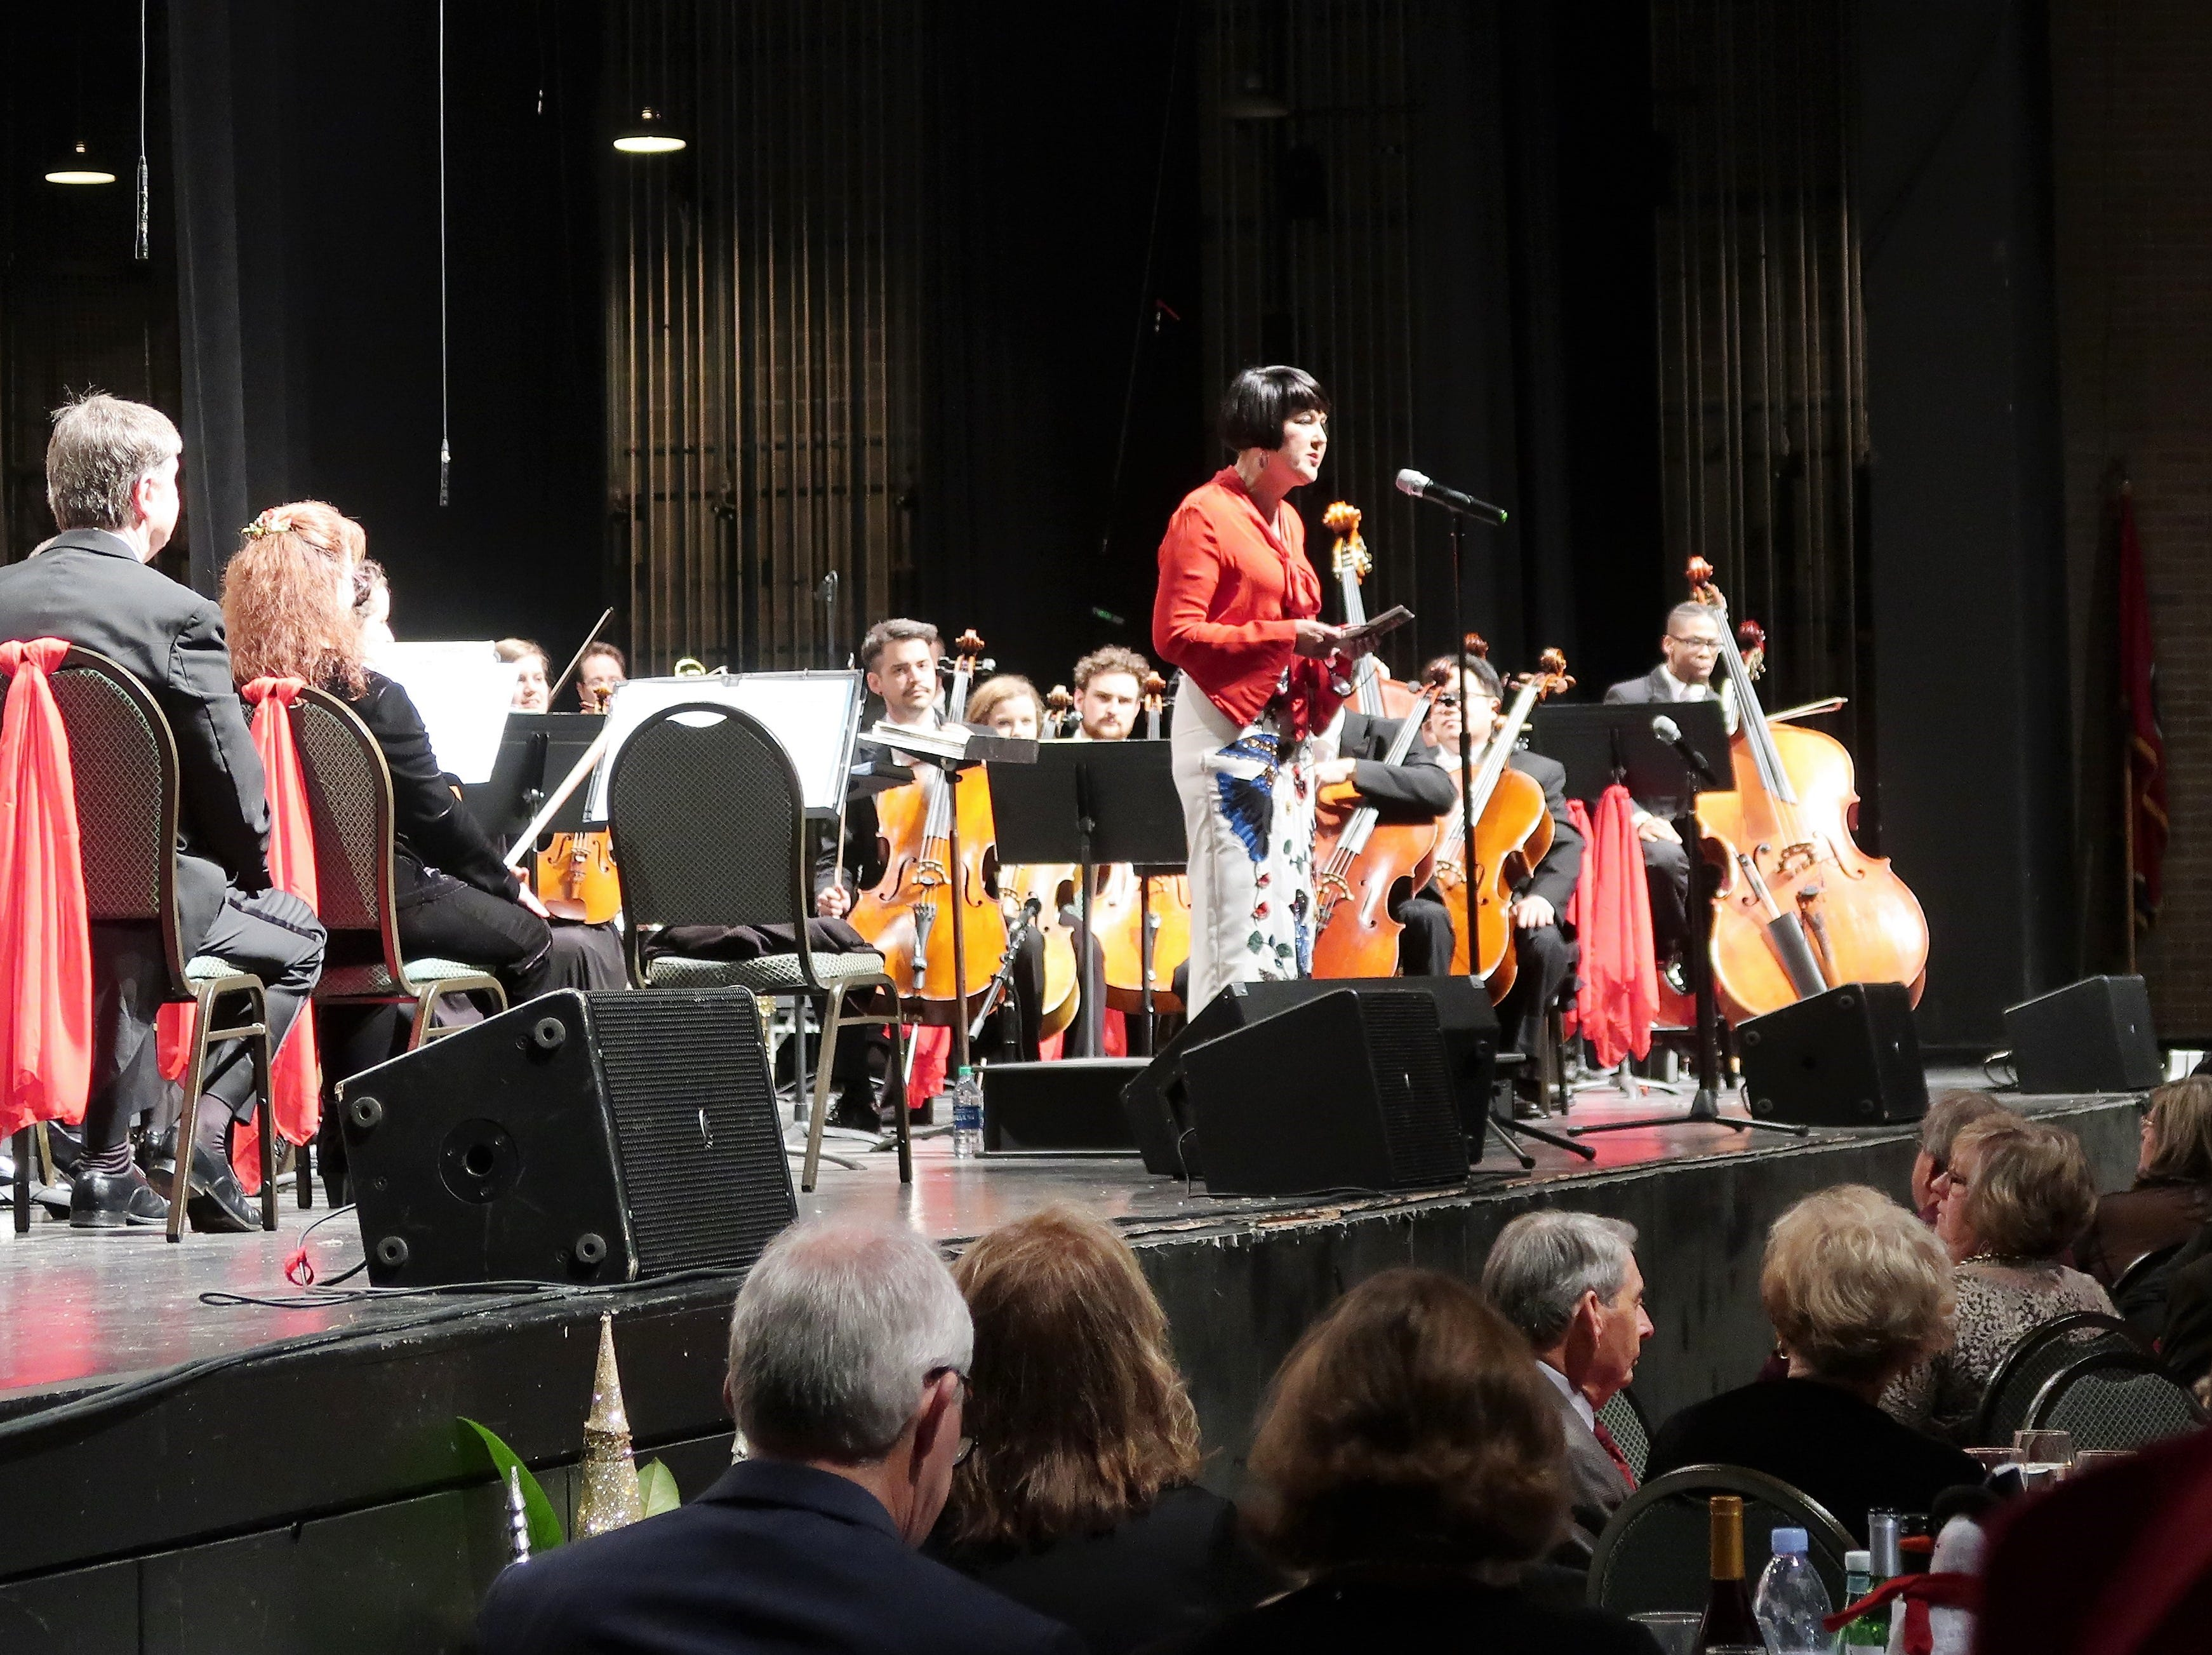 The Jackson Symphony presented the annual Holiday Pops Concert on Saturday, December 1, 2018 at the Carl Perkins Civic Center in downtown Jackson.  The Pops featured many of the sounds of the holiday season for the whole family.  The concert included guest soprano soloist, Stacey Stofferahan and members of the Jackson Choral Society.  The family friendly event featured selections from favorites such as the Polar Express, The Nutcracker, and A Charlie Brown Christmas as well as sing-a-long carols and a visit from old Saint Nick.